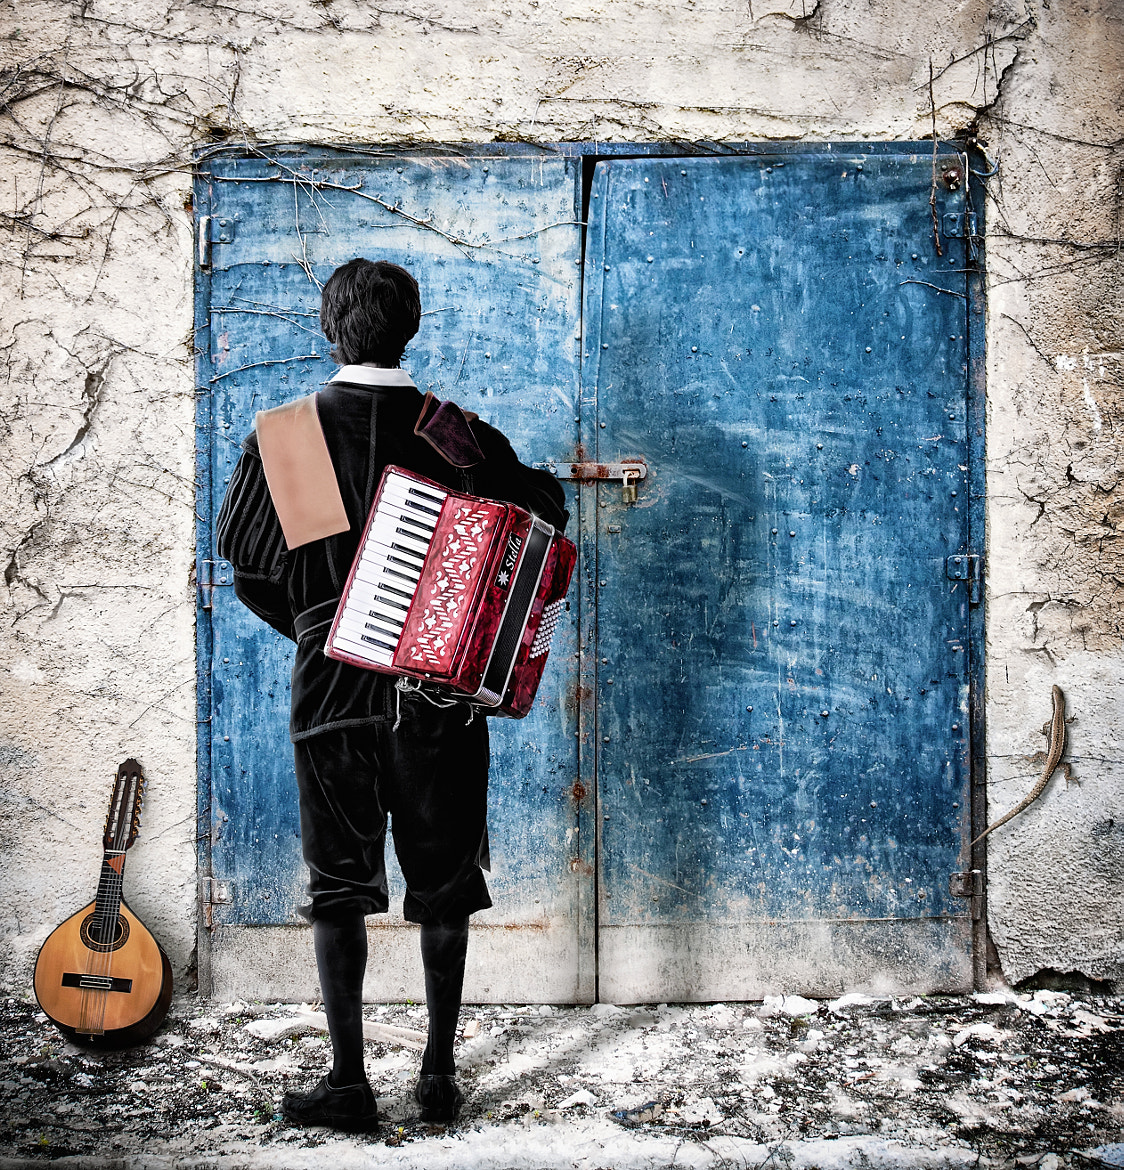 Photograph Musician at the door by Nermin Smajić on 500px